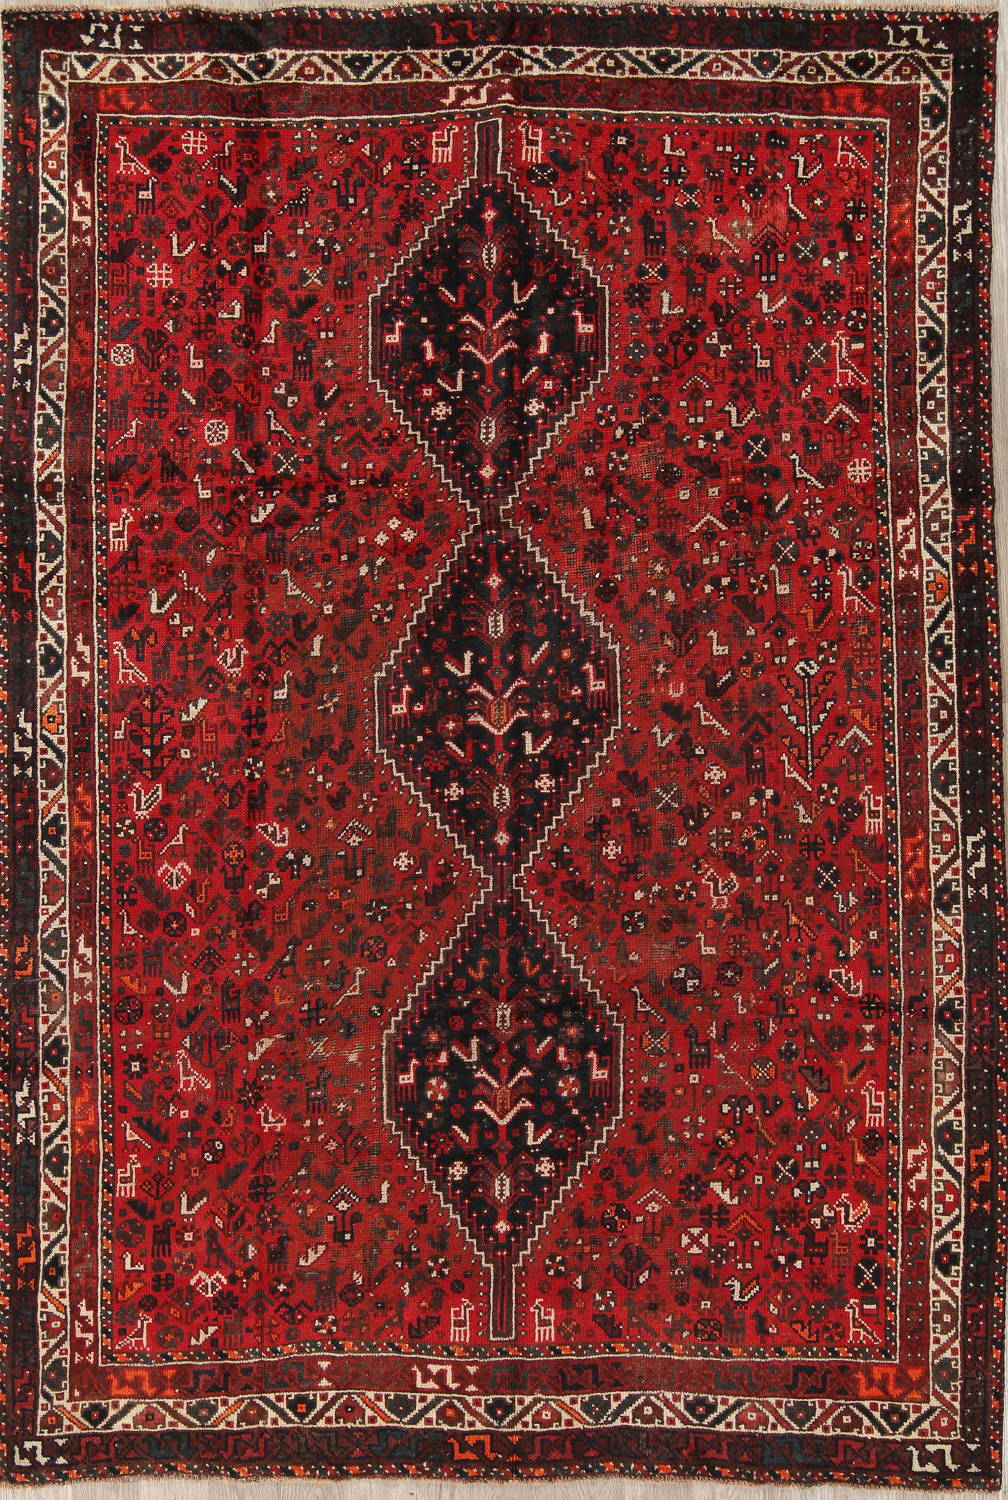 Antique Tribal Shiraz Persian Hand-Knotted 7x10 Wool Area Rug image 1